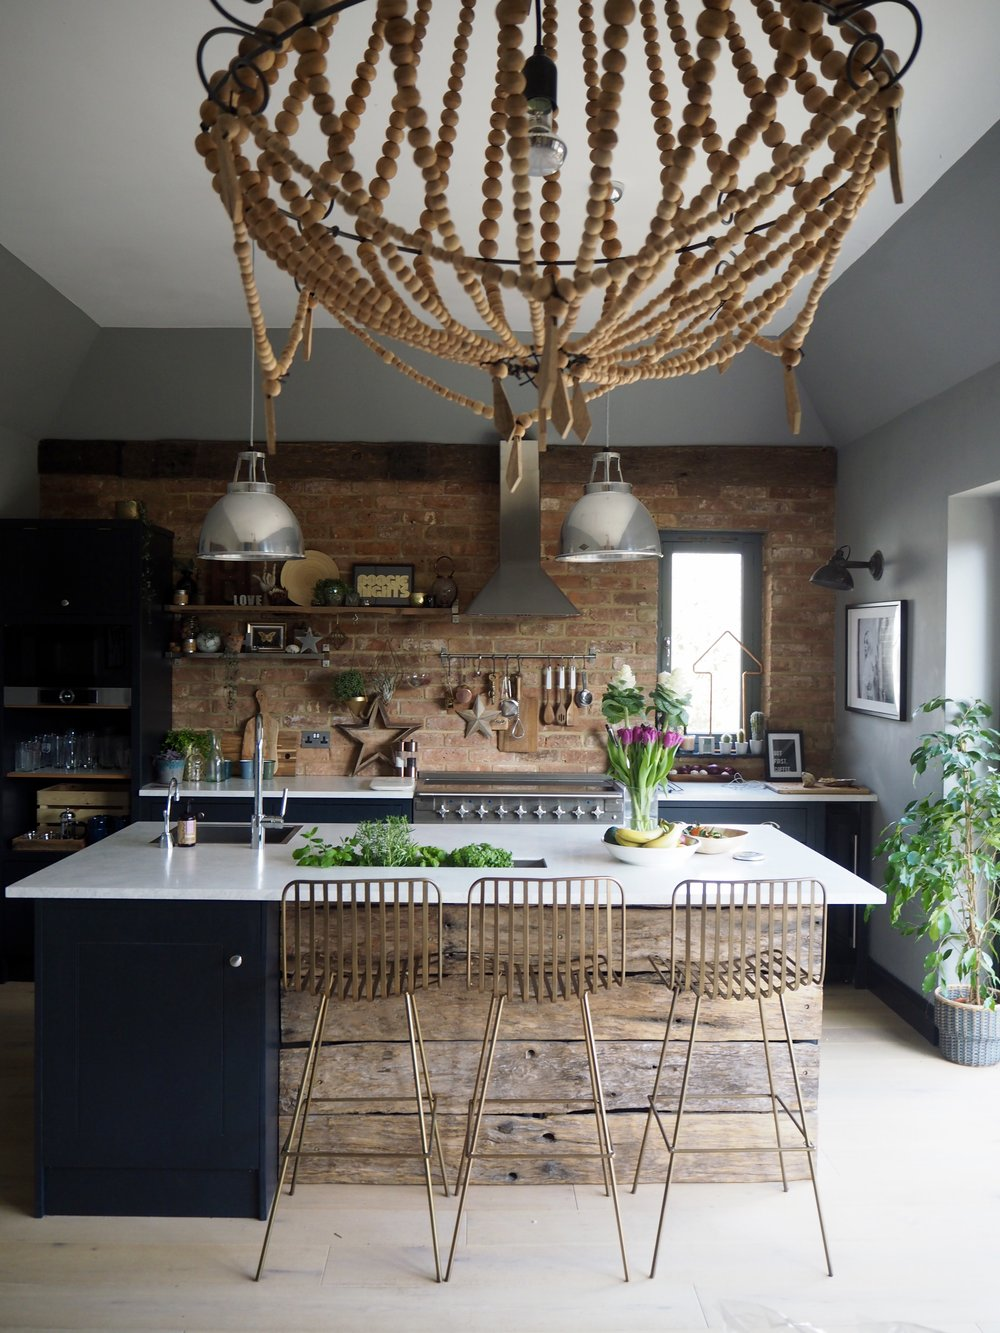 My Kitchen ....... Here's how we did it! — HORNSBY STYLE on